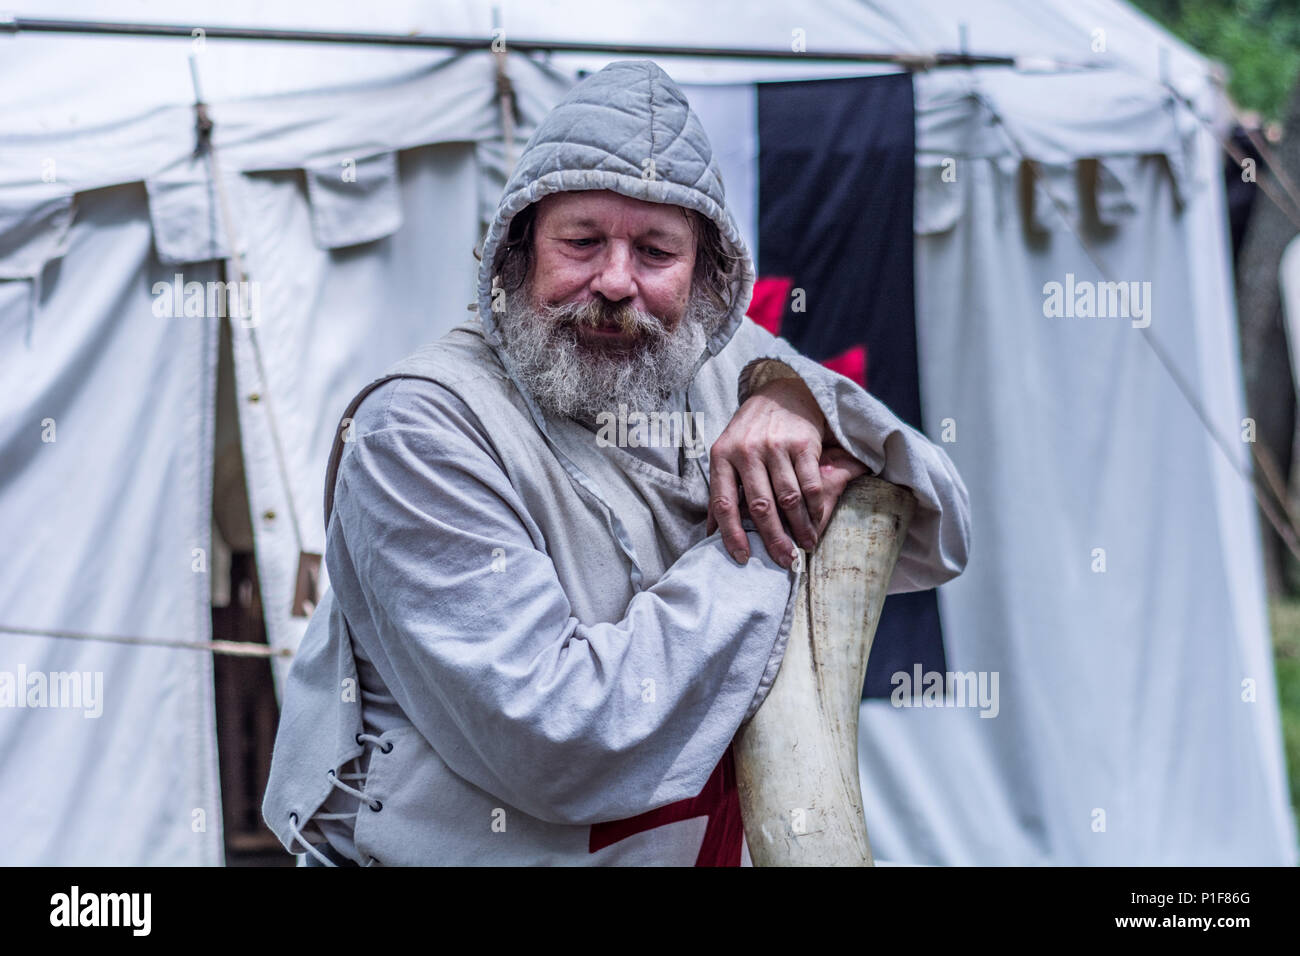 nis-serbia-june-10-2018-portrait-of-old-